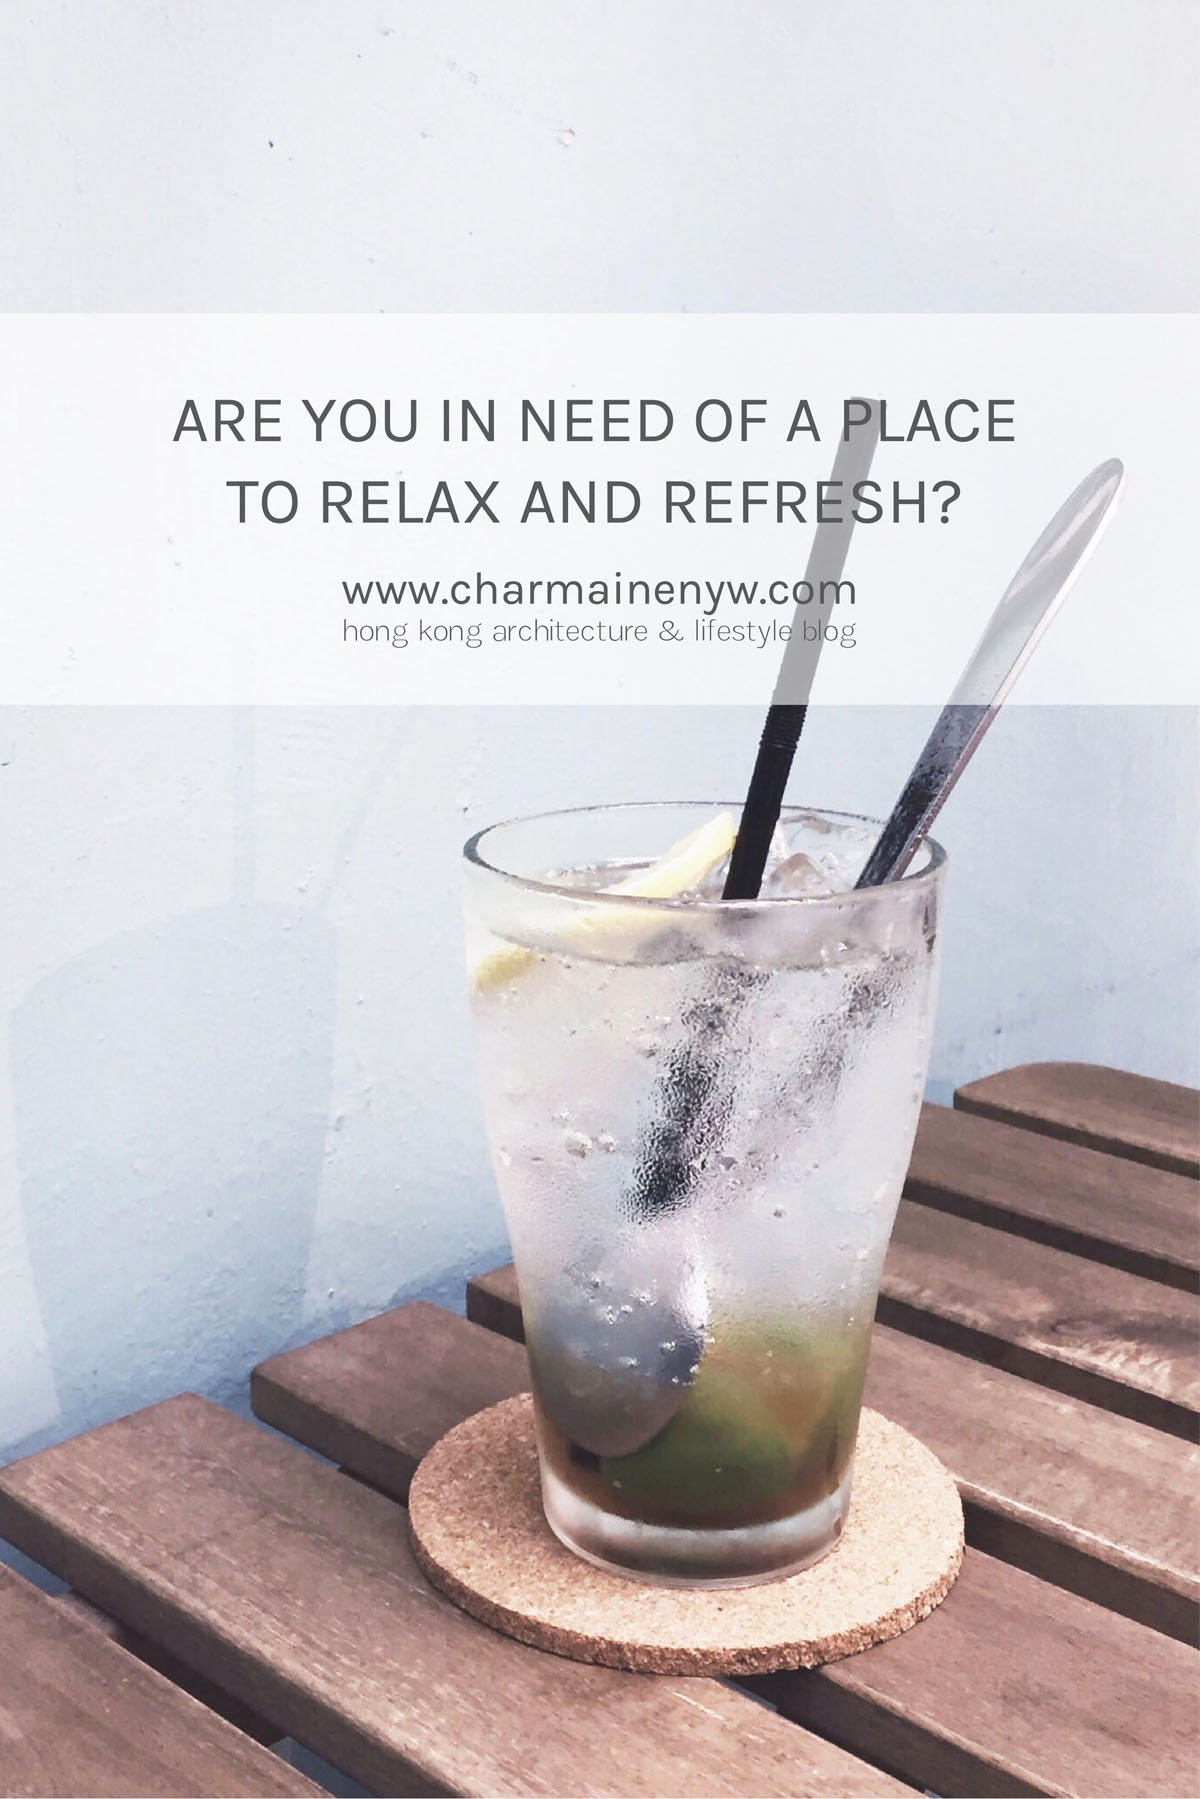 Relax & Refresh in North Point, Hong Kong